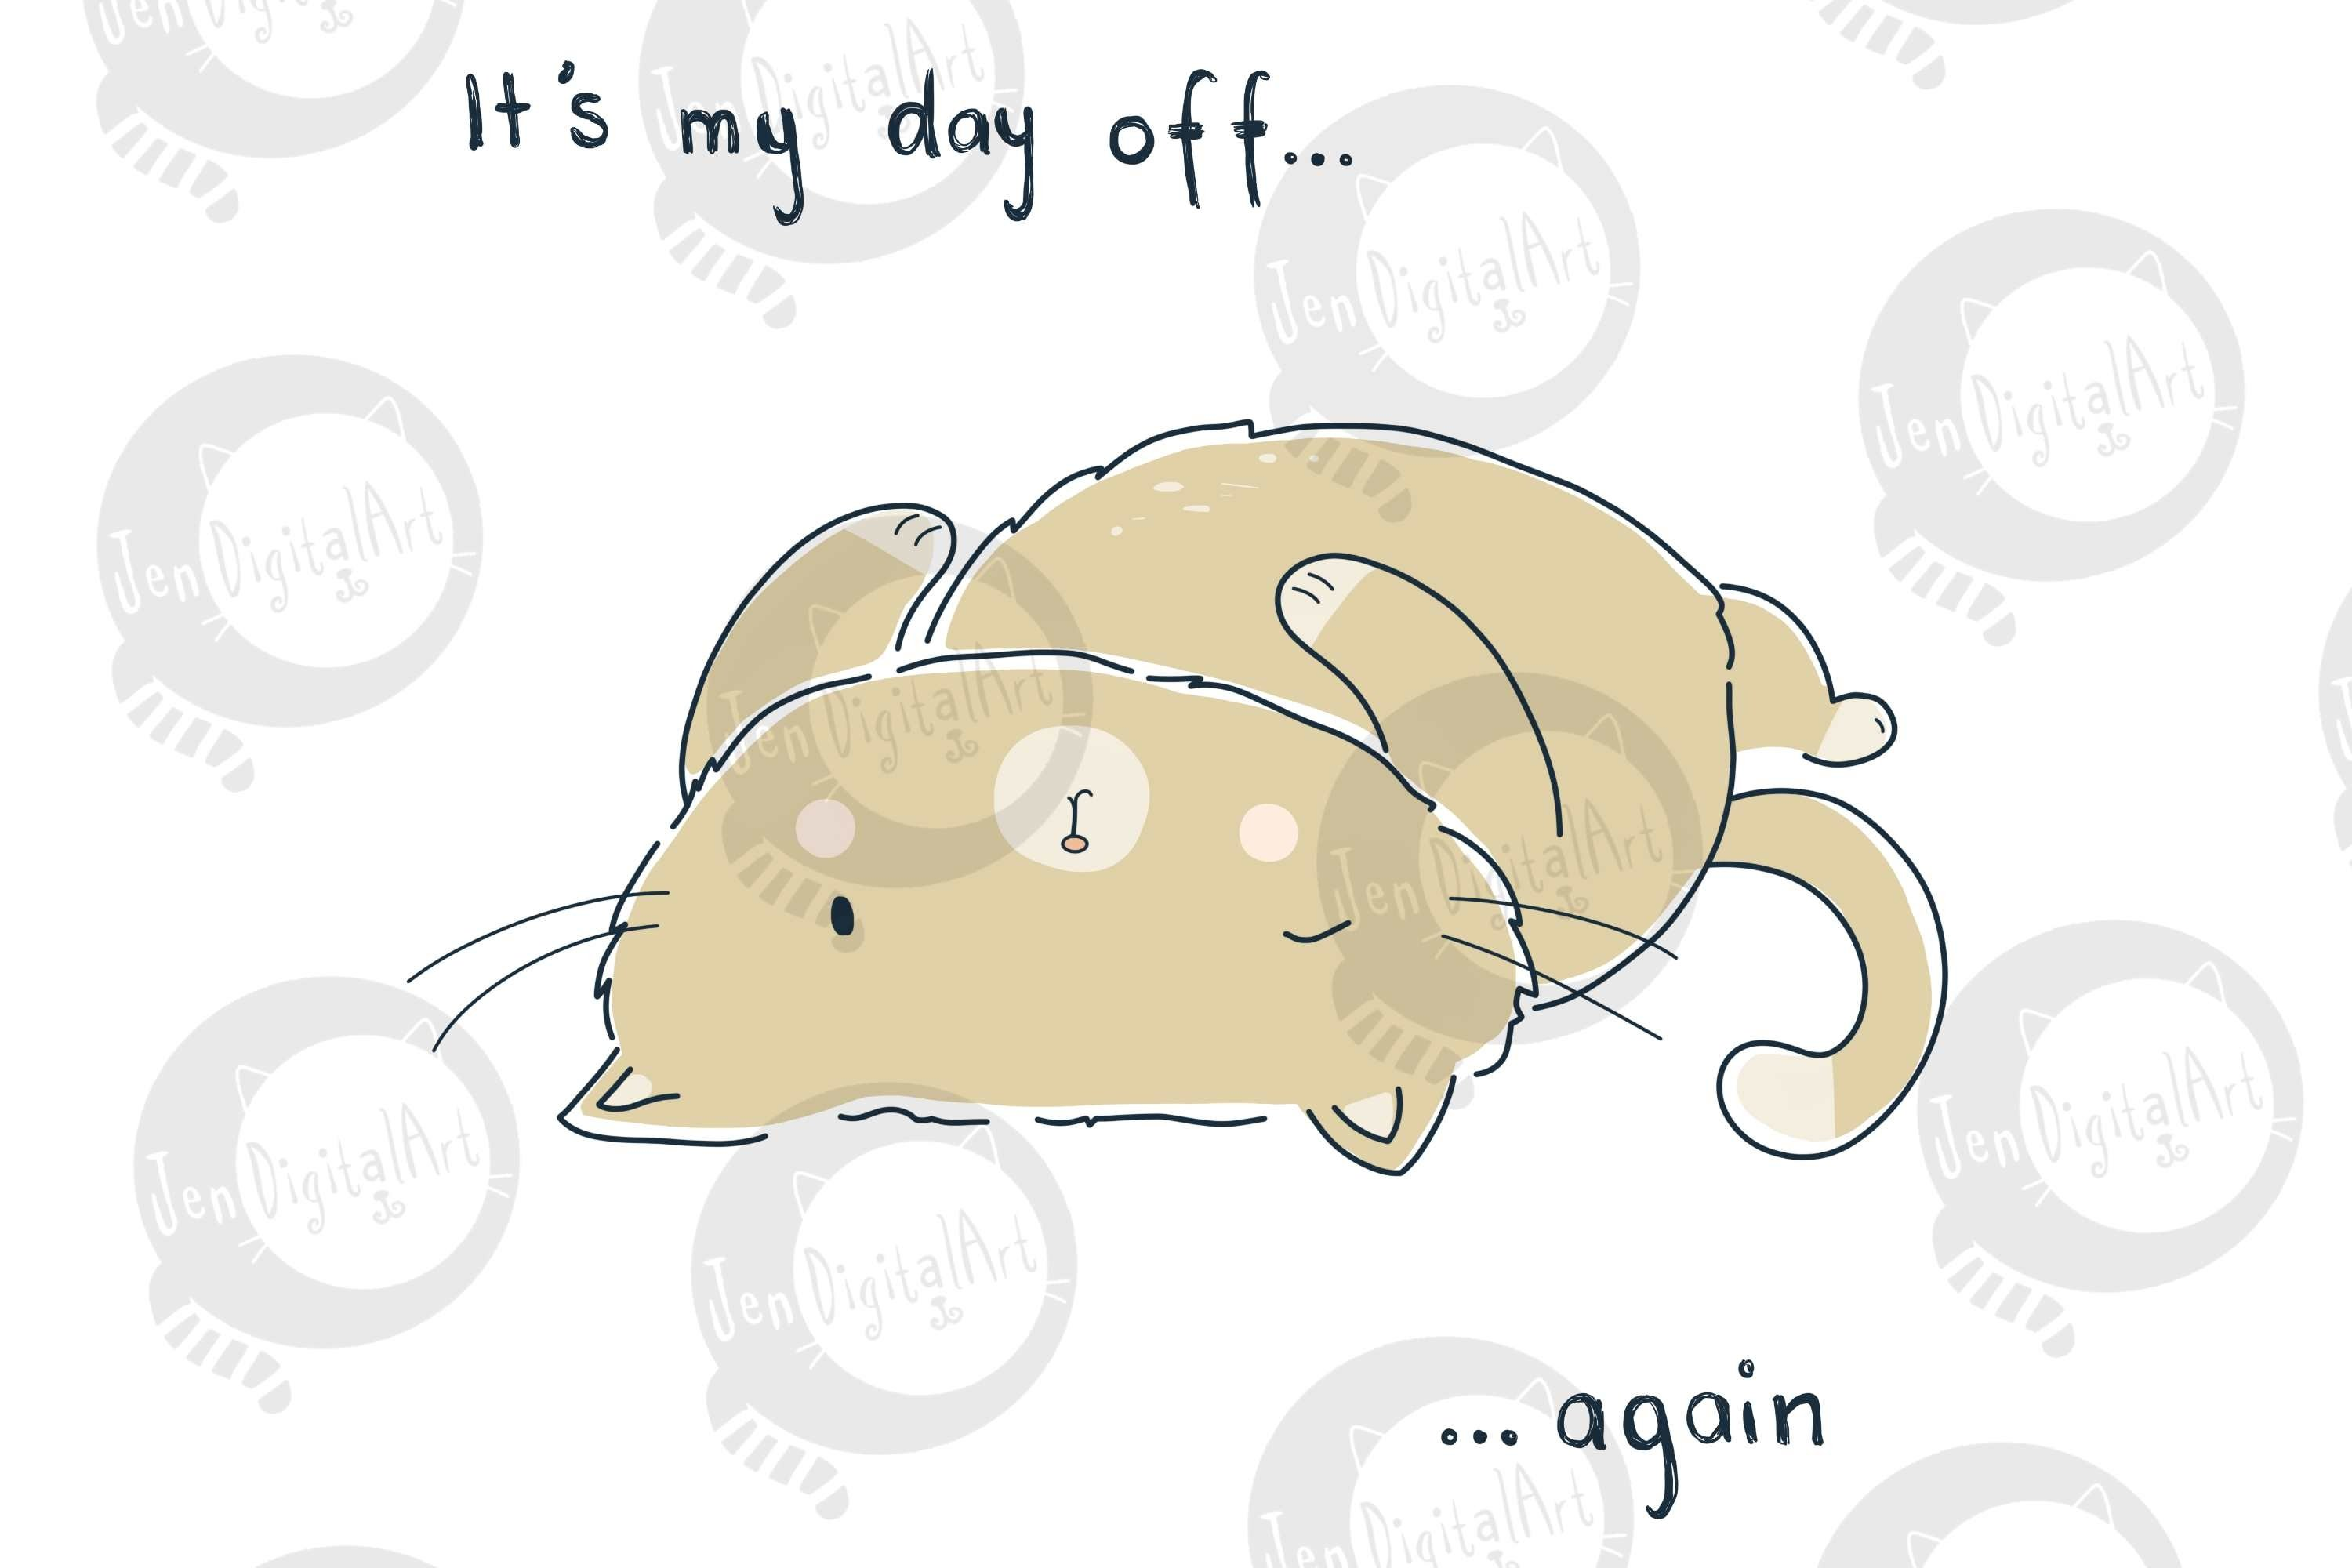 Day Off Cat | Clip Art Illustration | PNG/JPEG example image 3